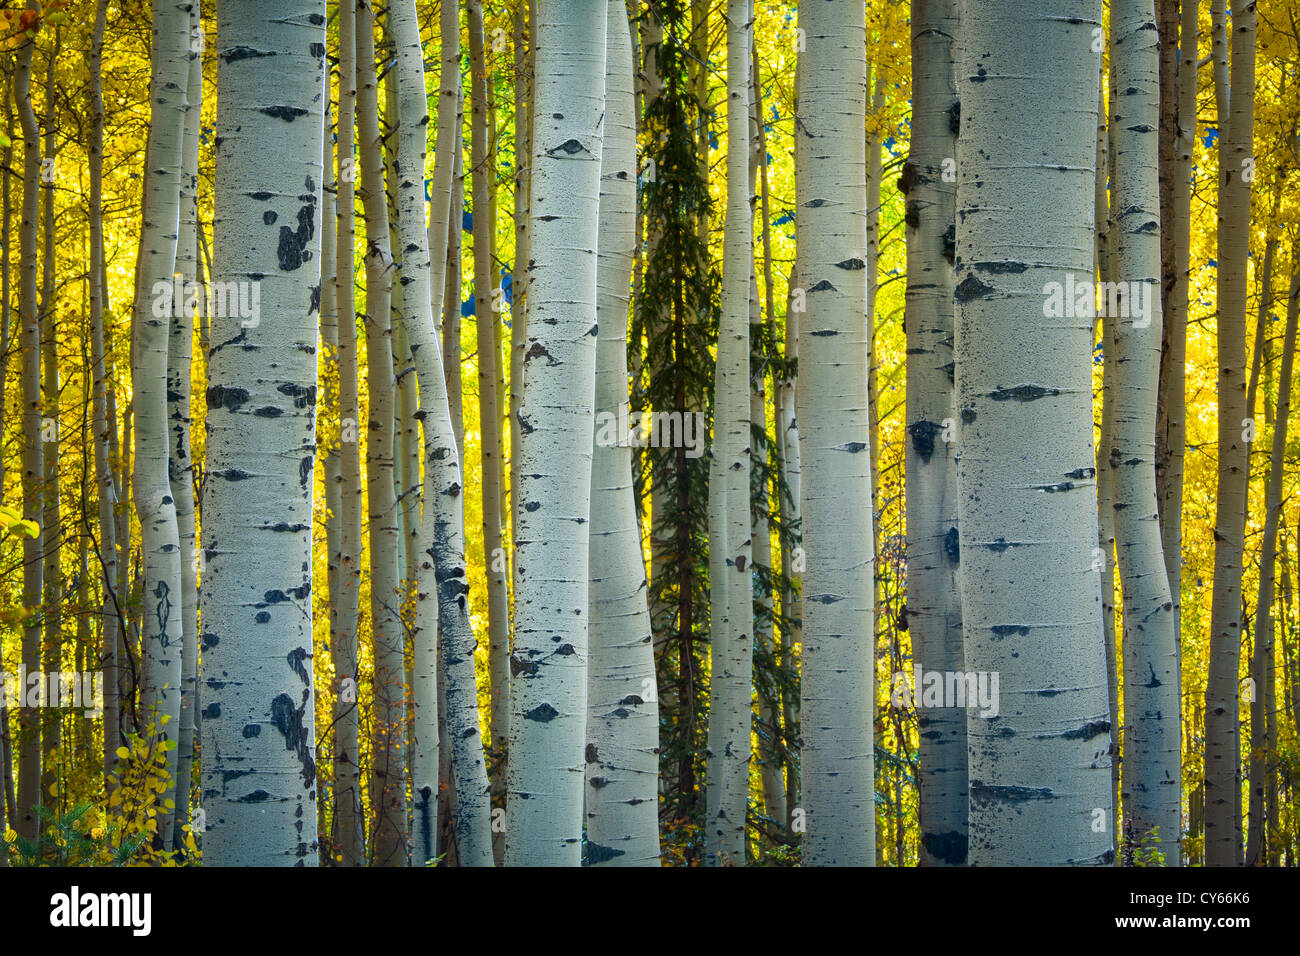 Aspen Trees In Fall Stock Photos & Aspen Trees In Fall Stock Images ...